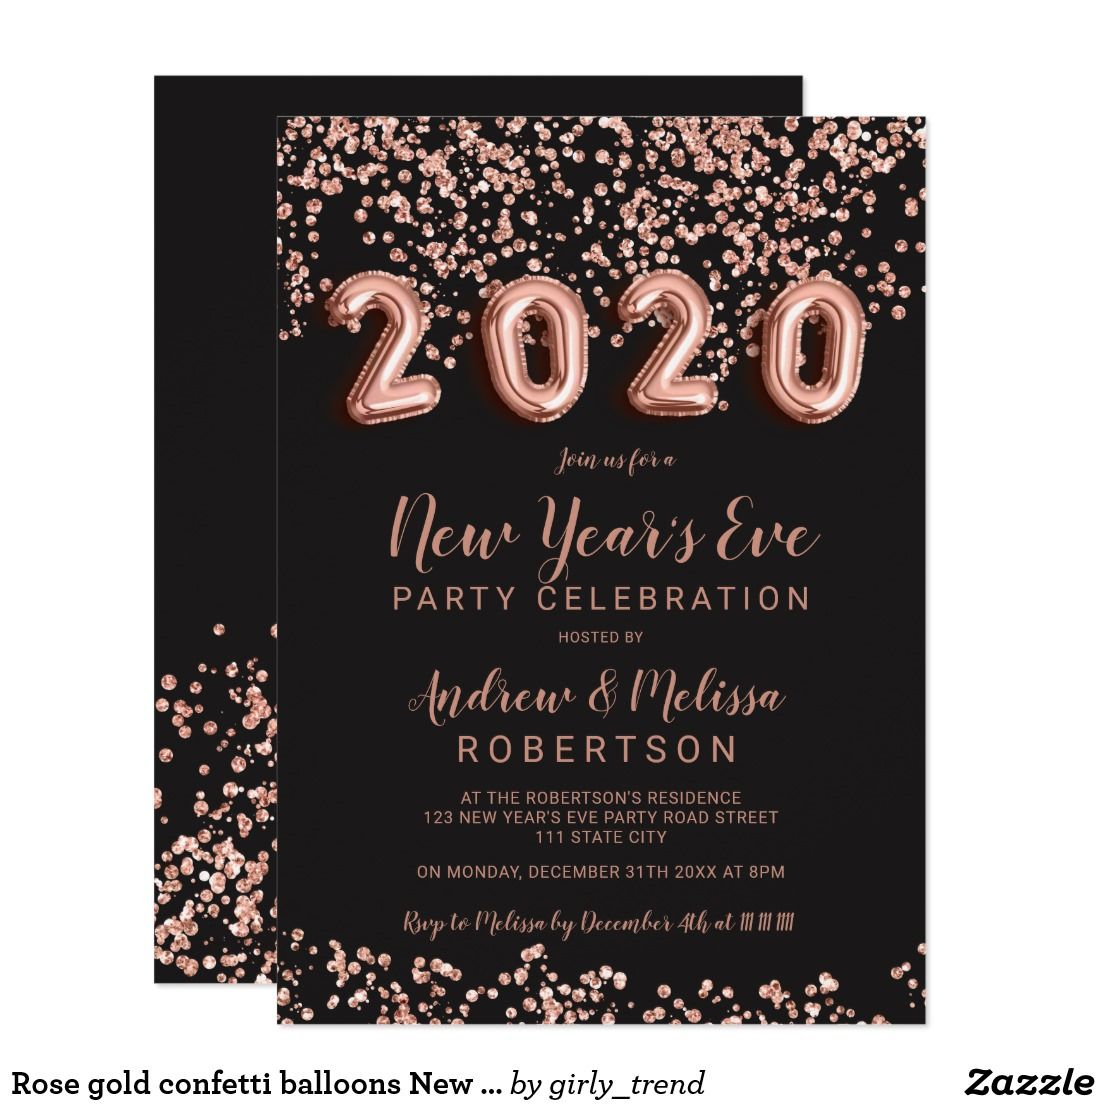 Rose gold confetti balloons New Year's eve 2020 Invitation